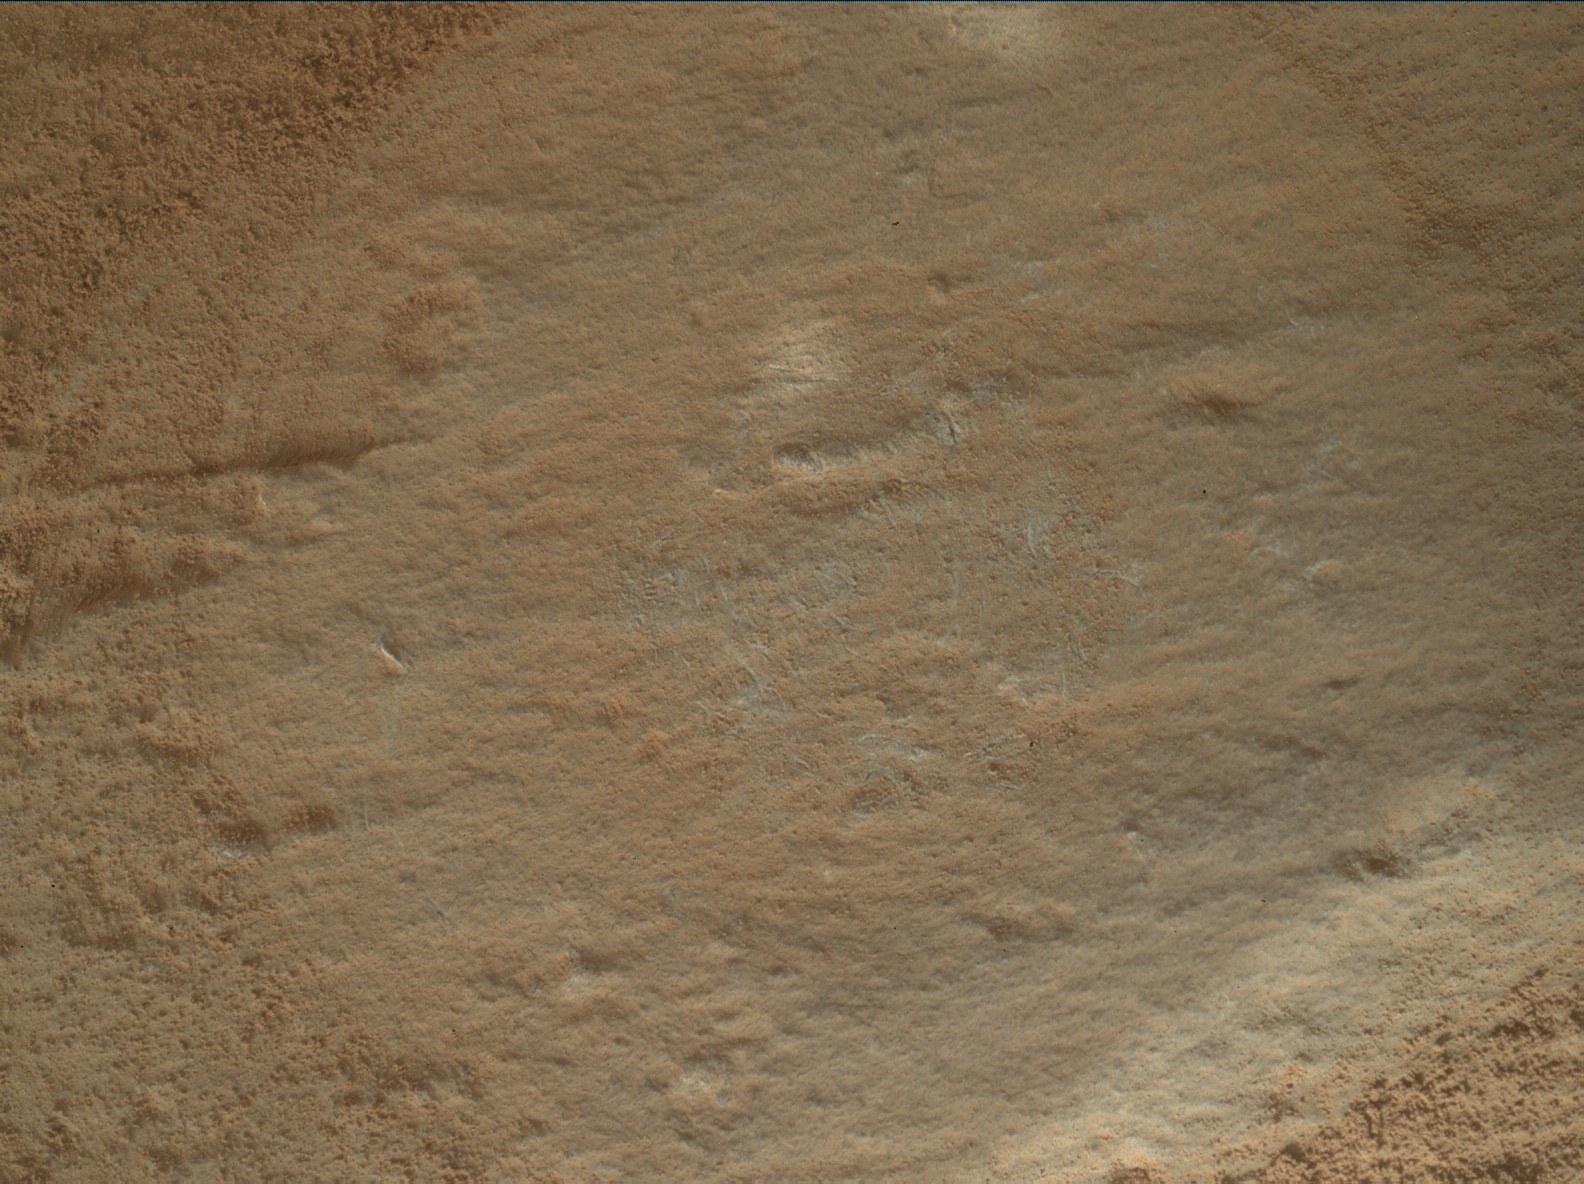 Nasa's Mars rover Curiosity acquired this image using its Mars Hand Lens Imager (MAHLI) on Sol 2662